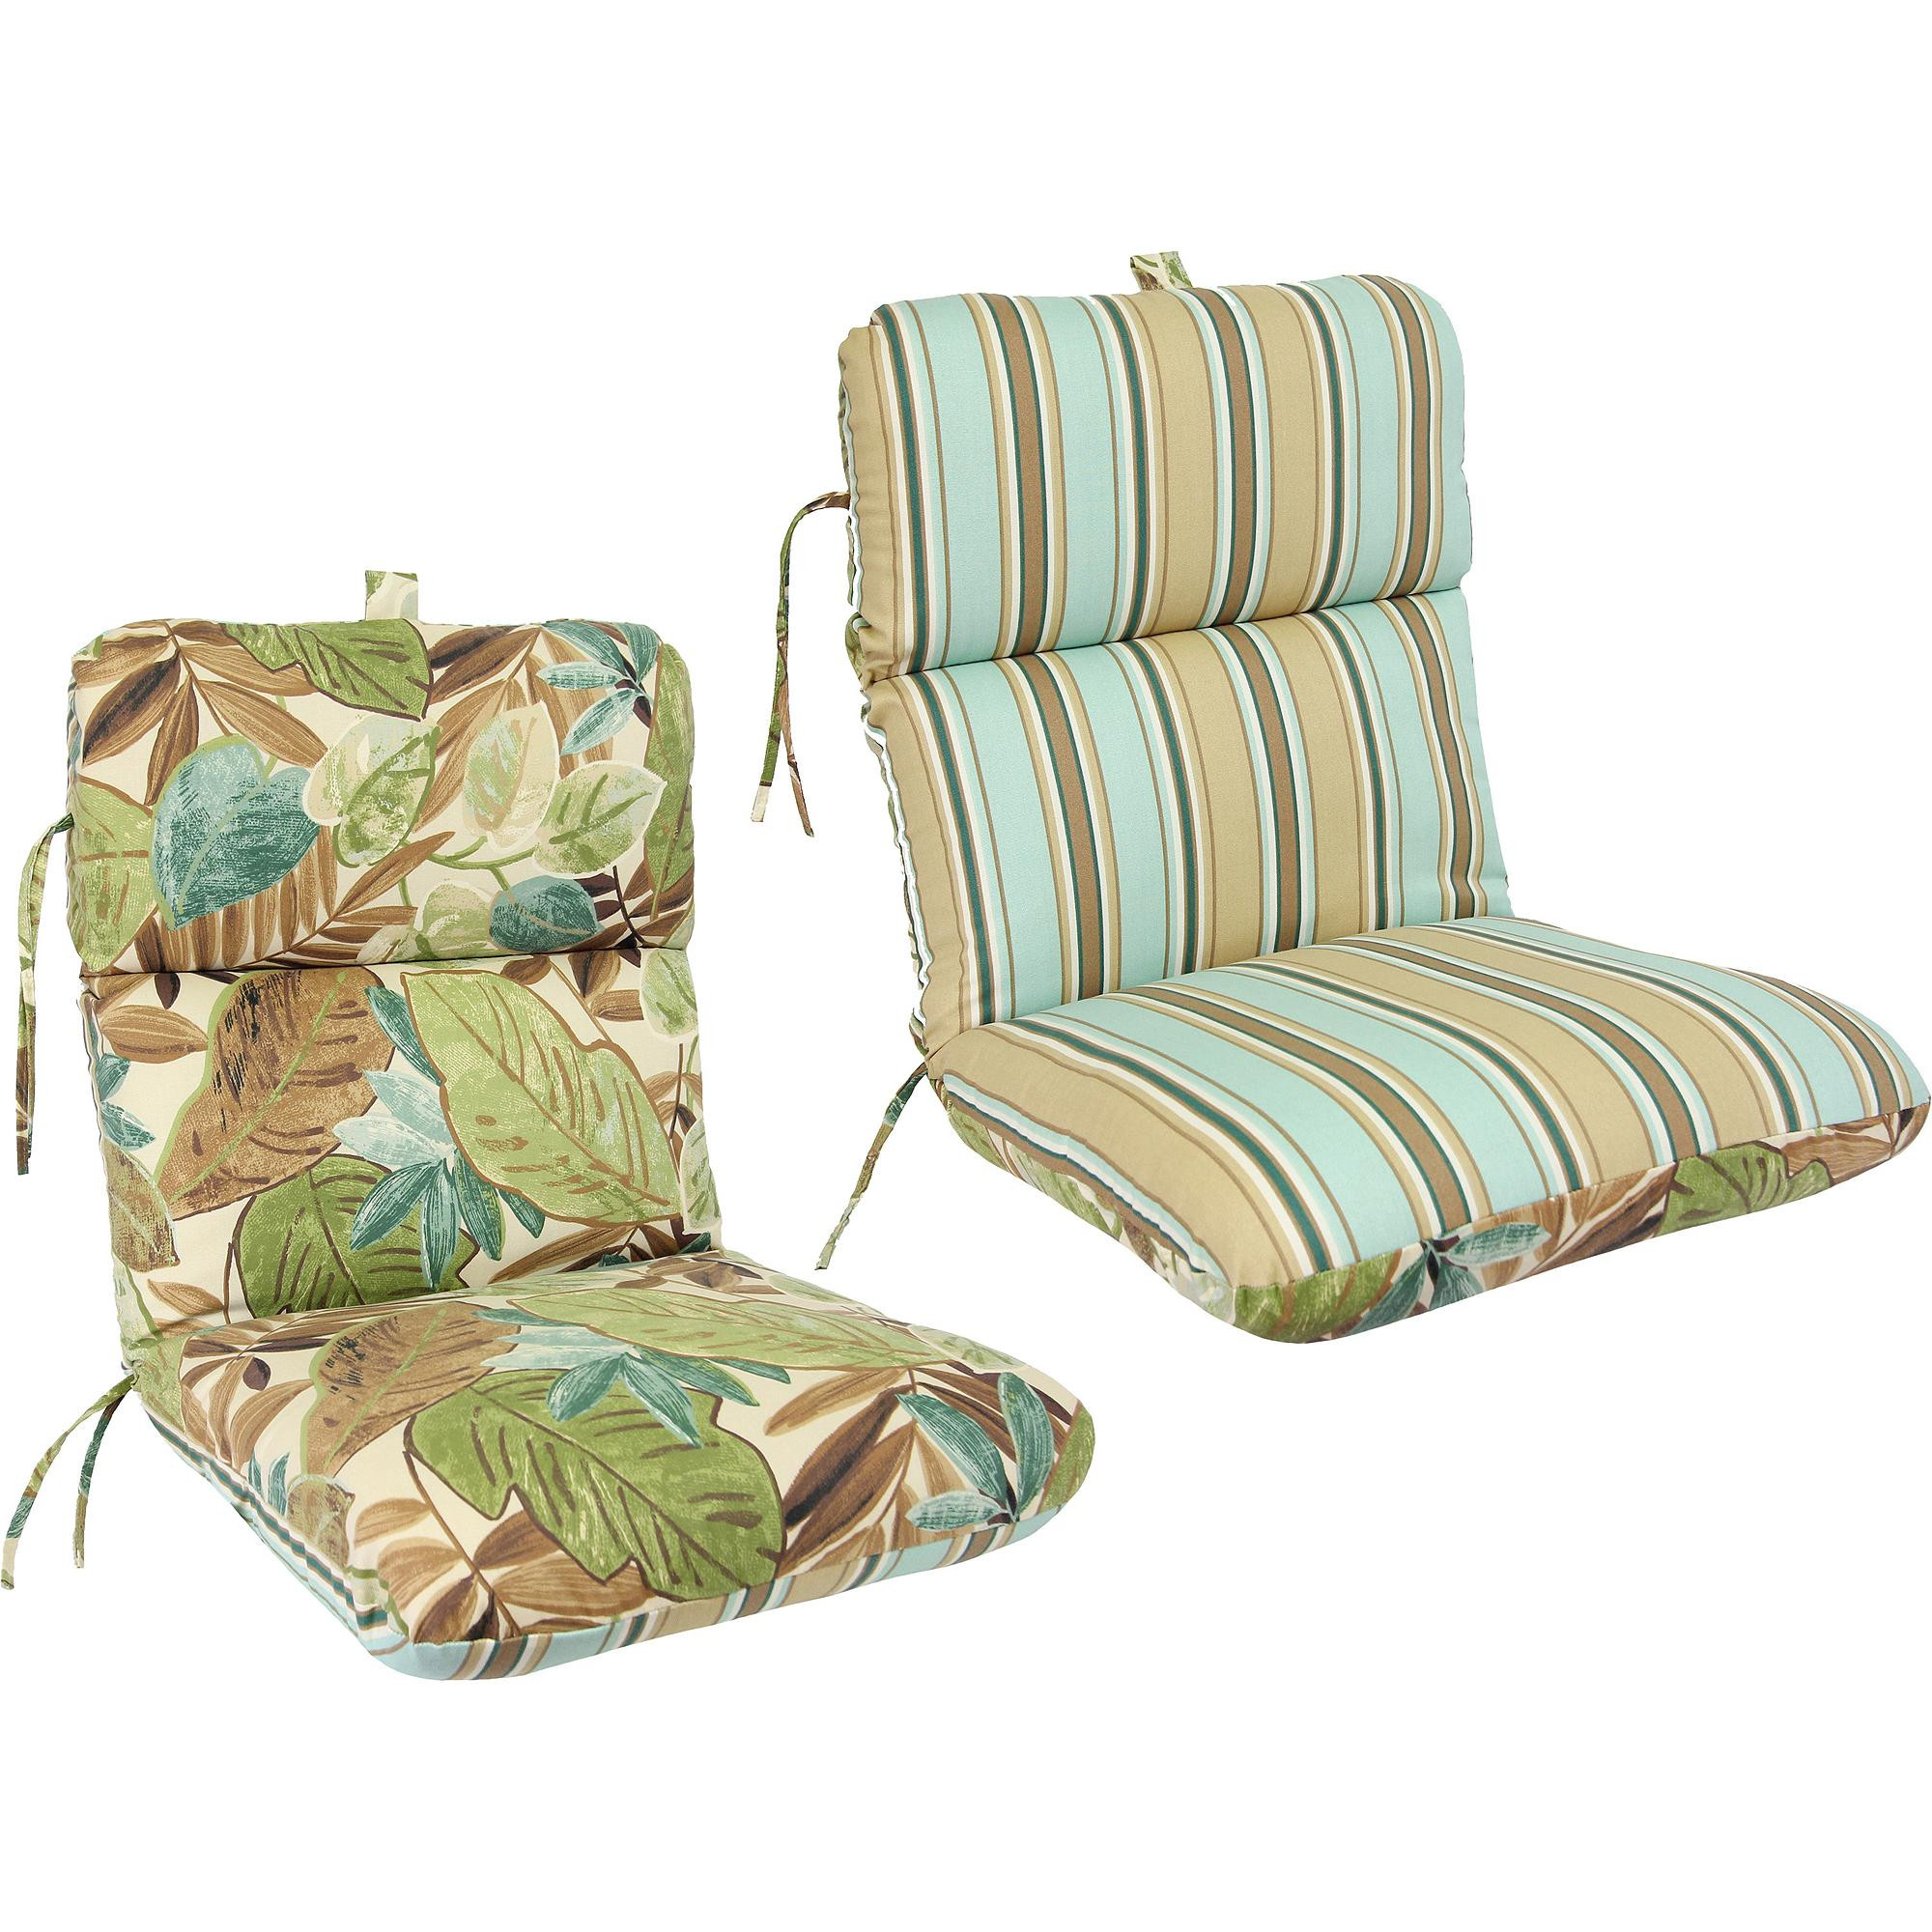 Best ideas about Walmart Patio Cushions Clearance . Save or Pin Impressive Outdoor Patio Chair Cushions Furniture Fort Now.